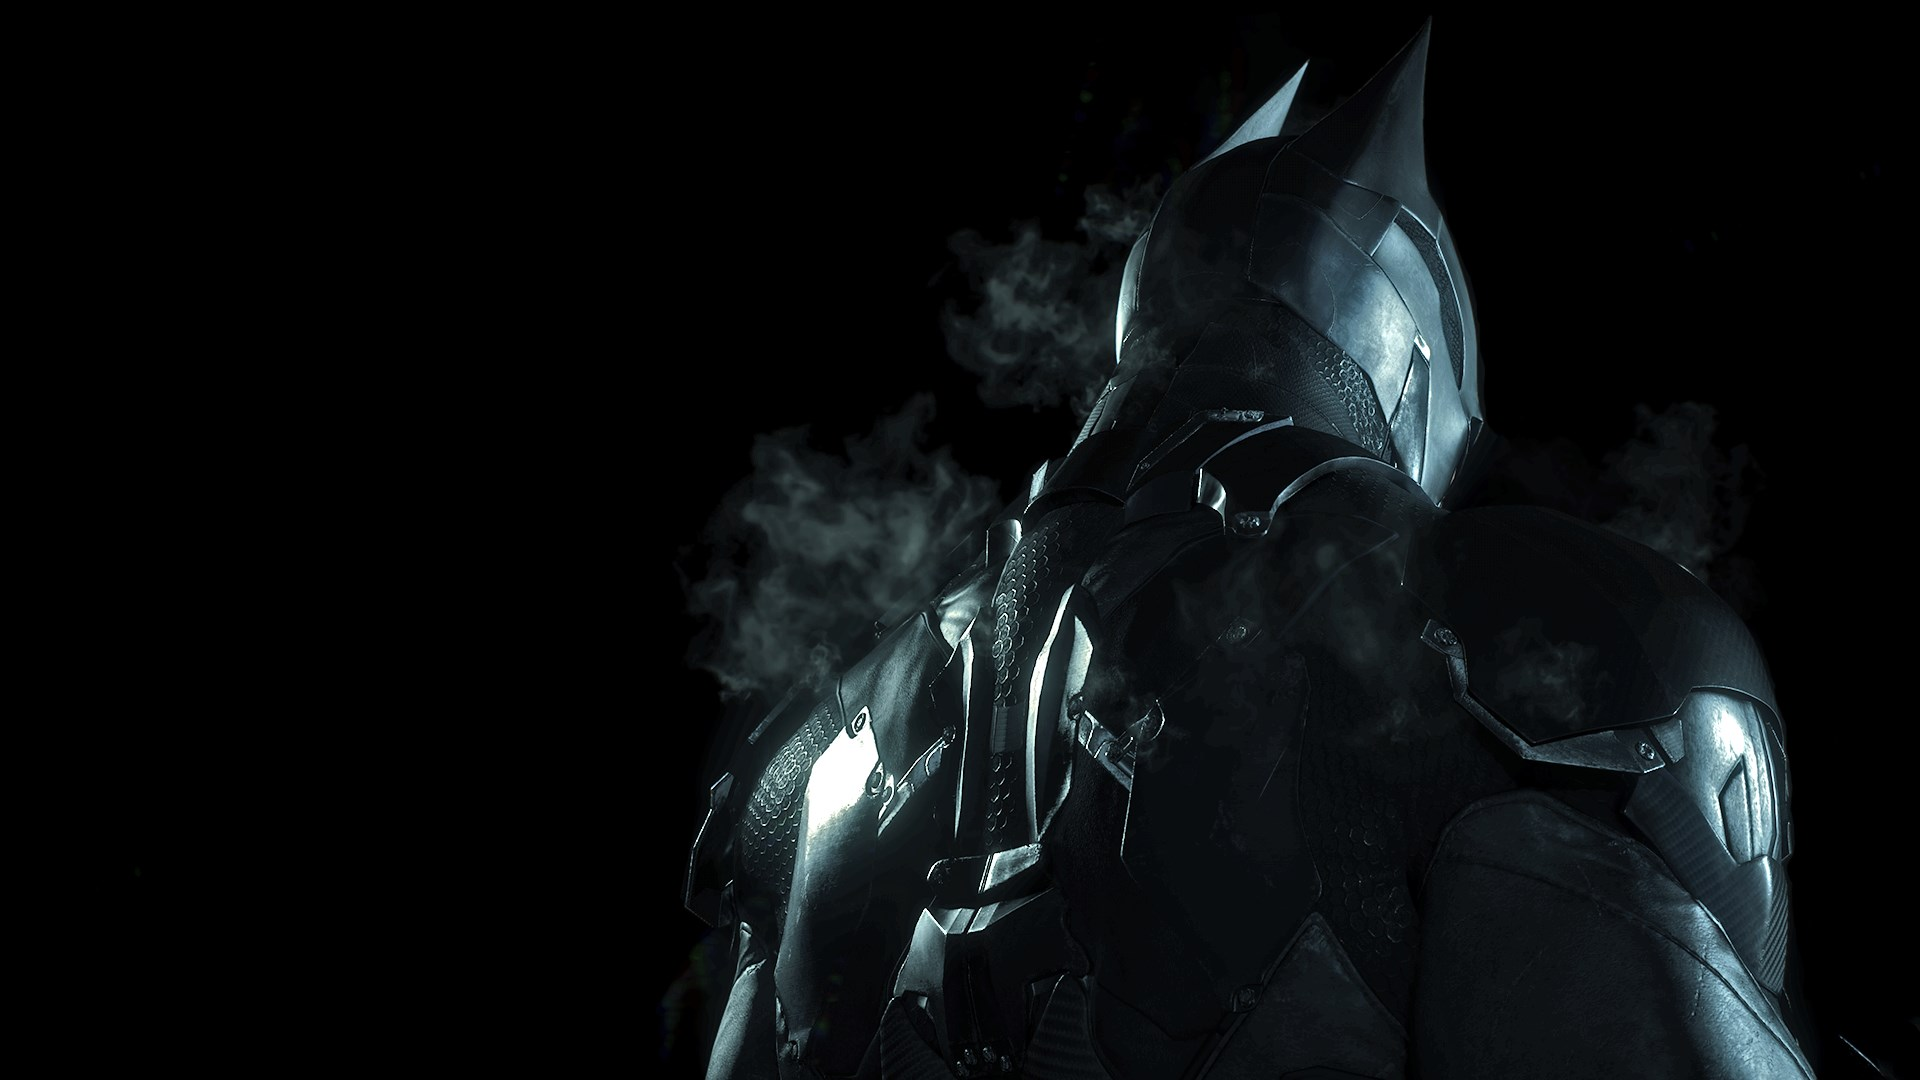 1920x1080-high-resolution-widescreen-batman-arkham-knight-wallpaper-wpc900889